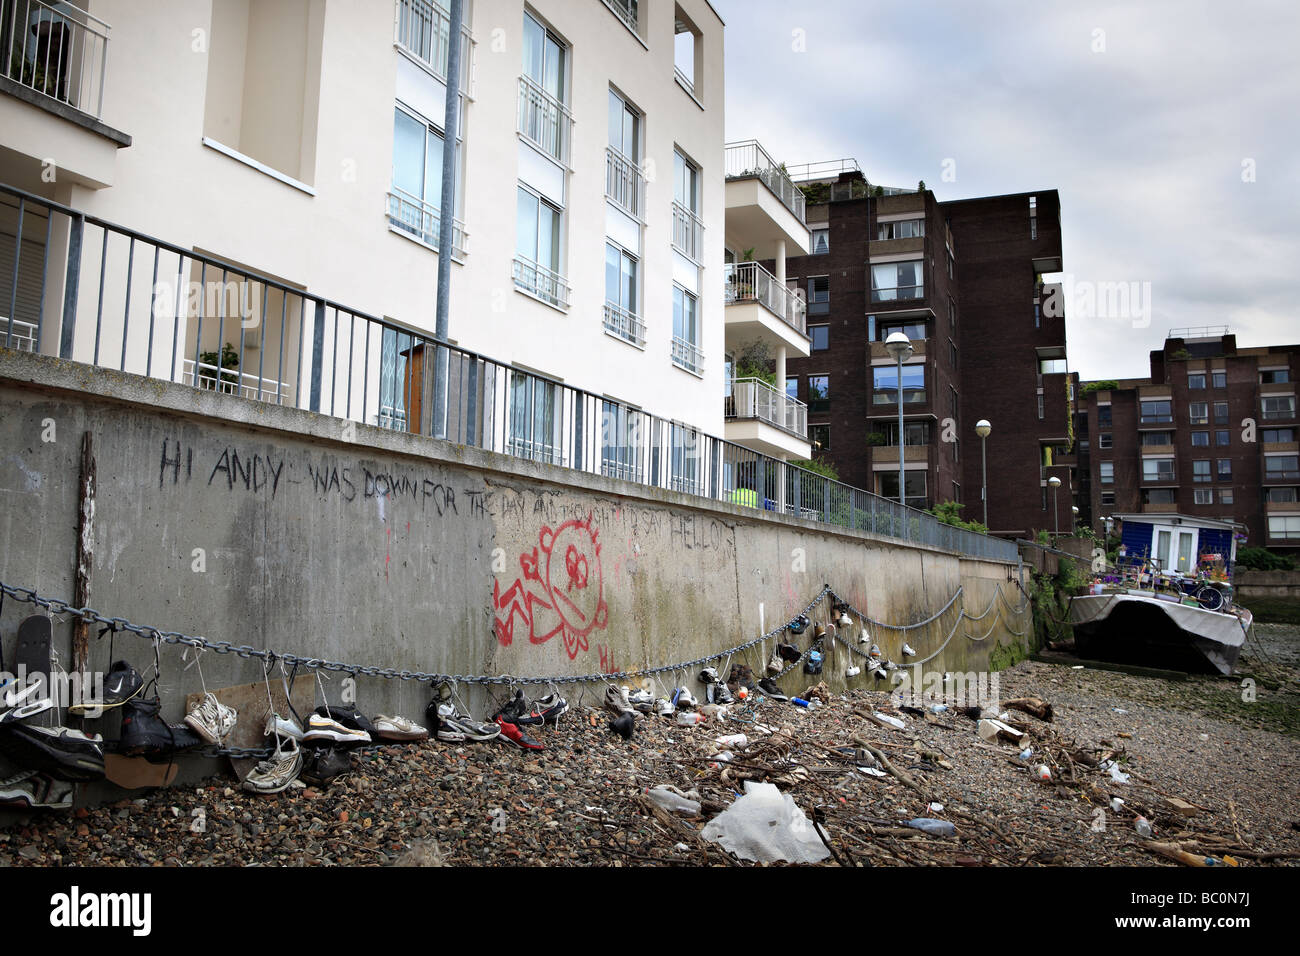 The river Thames' bank full of abandoned shoes and graffitis. - Stock Image